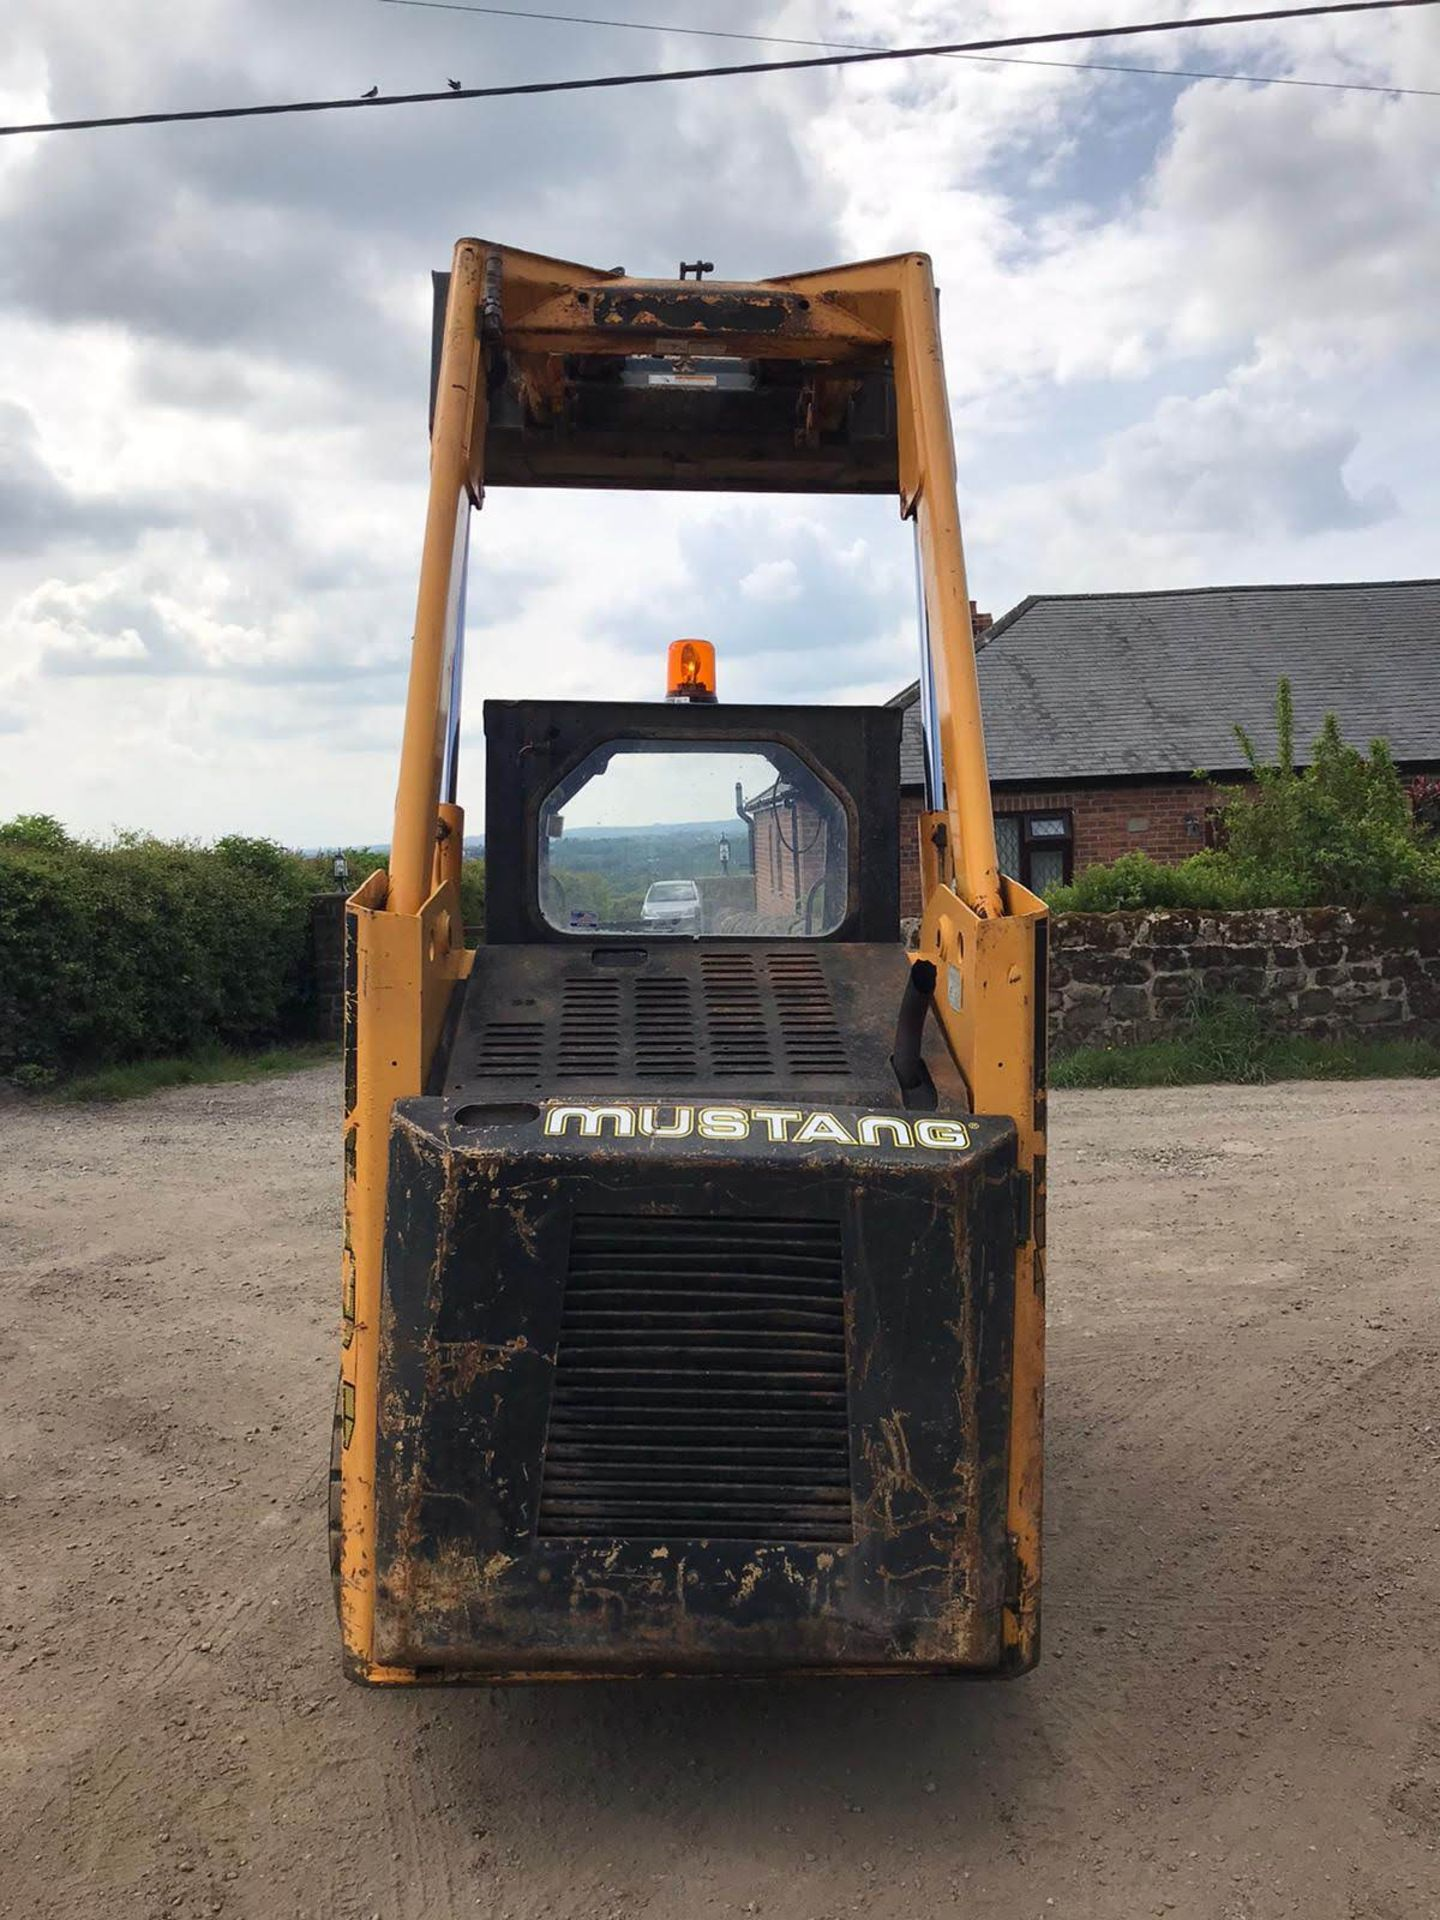 Lot 41 - 2000 MUSTANG SKIDSTEER LOADER, RUNS, DRIVES AND LIFTS, SHOWING 2085 HOURS *PLUS VAT*